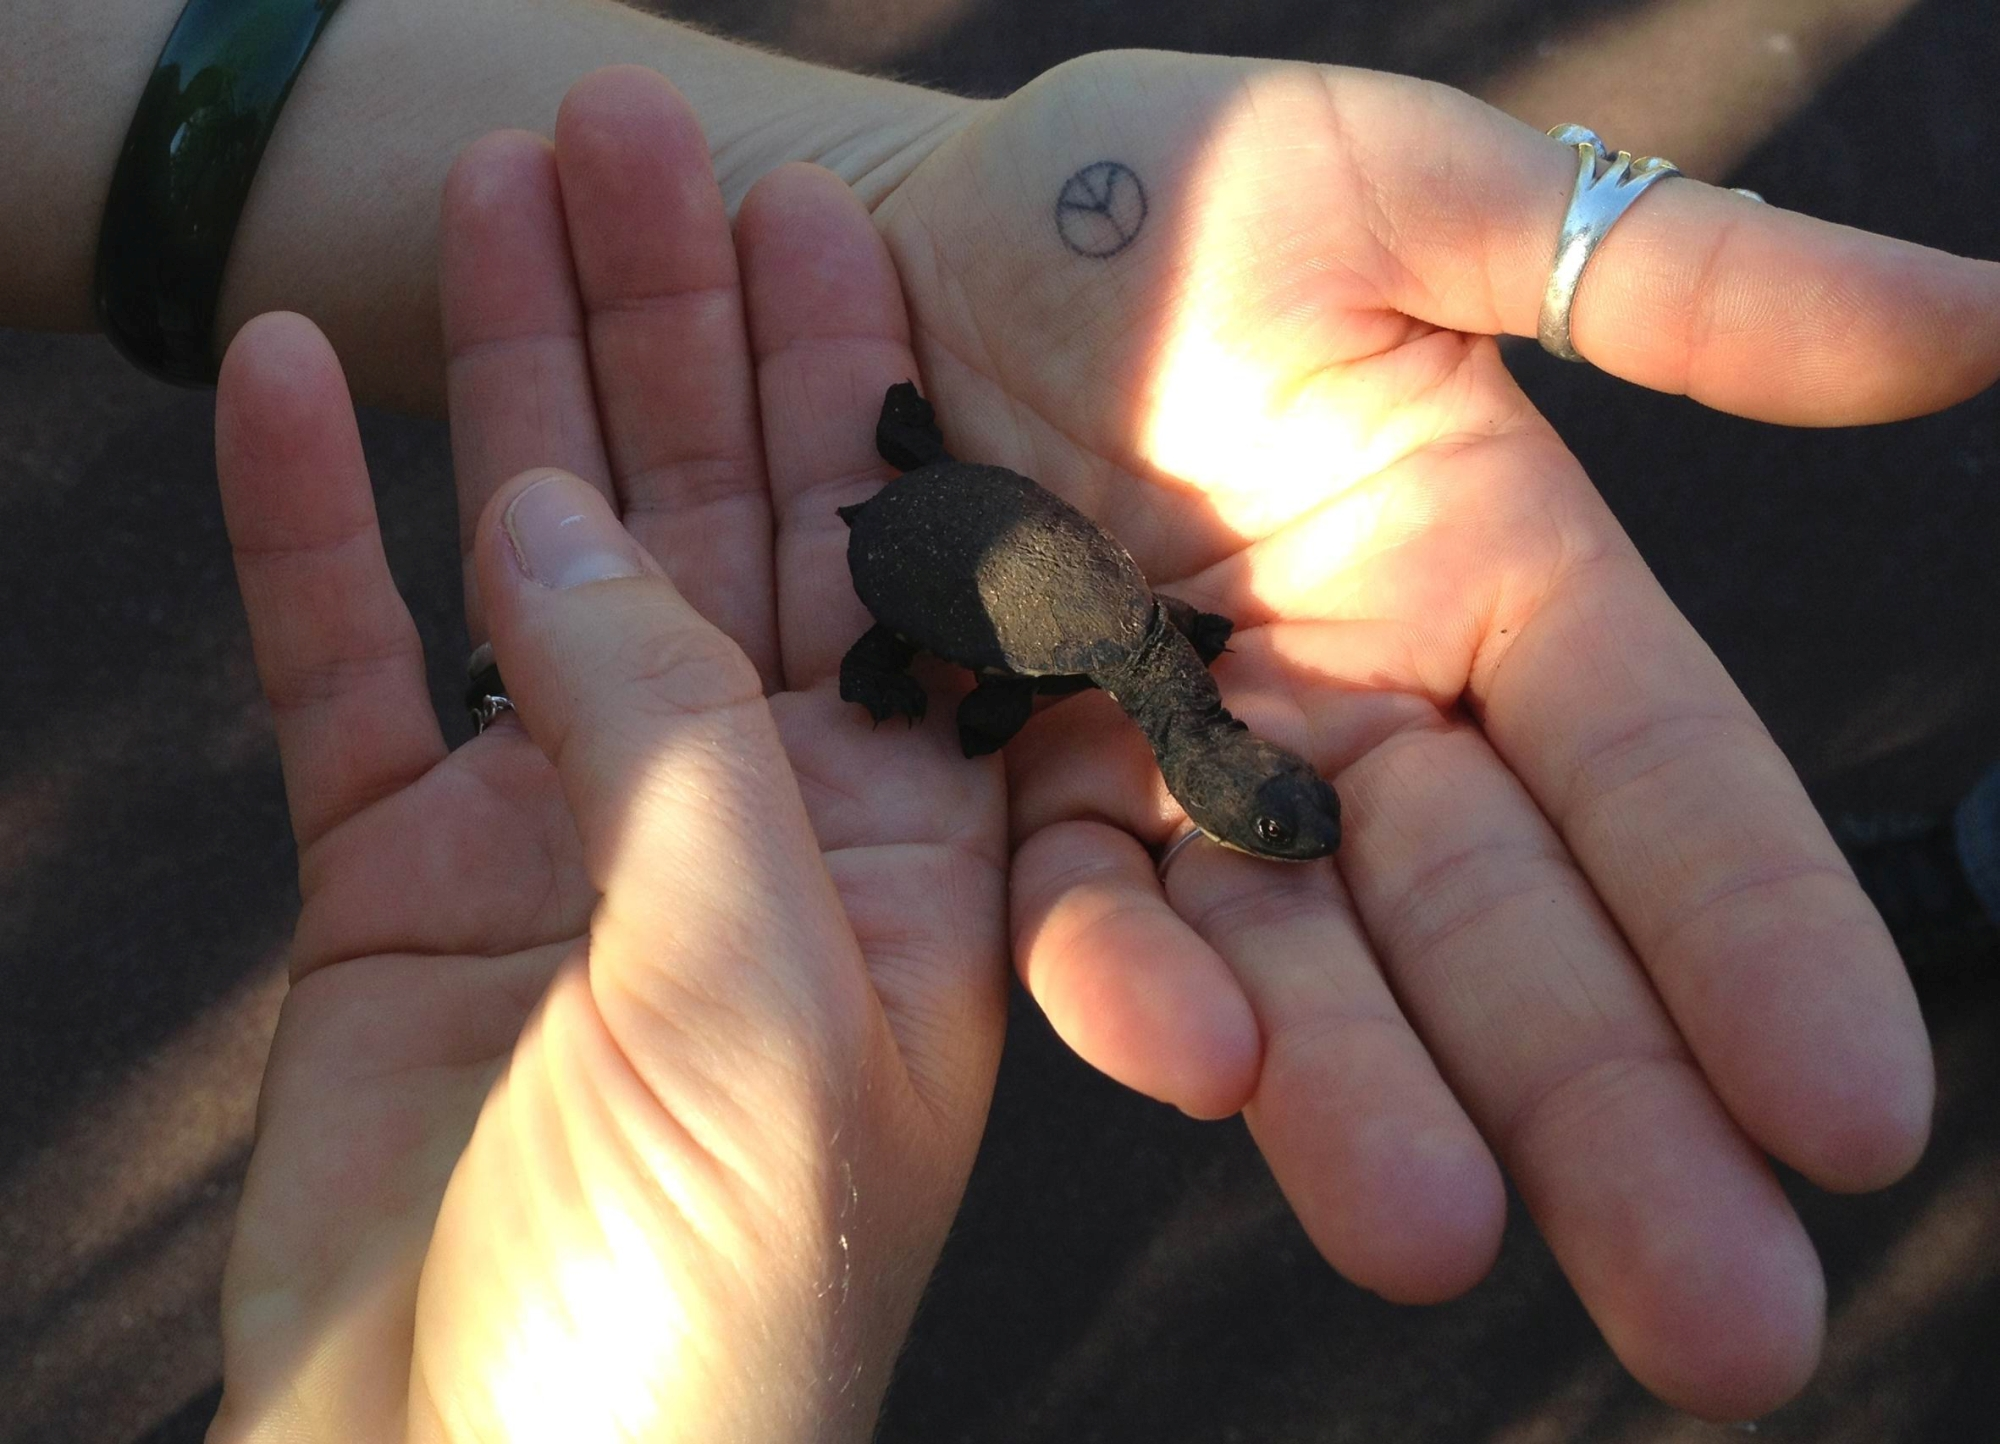 Runner Renee Rose found this baby turtle near Lake Joondalup recently.